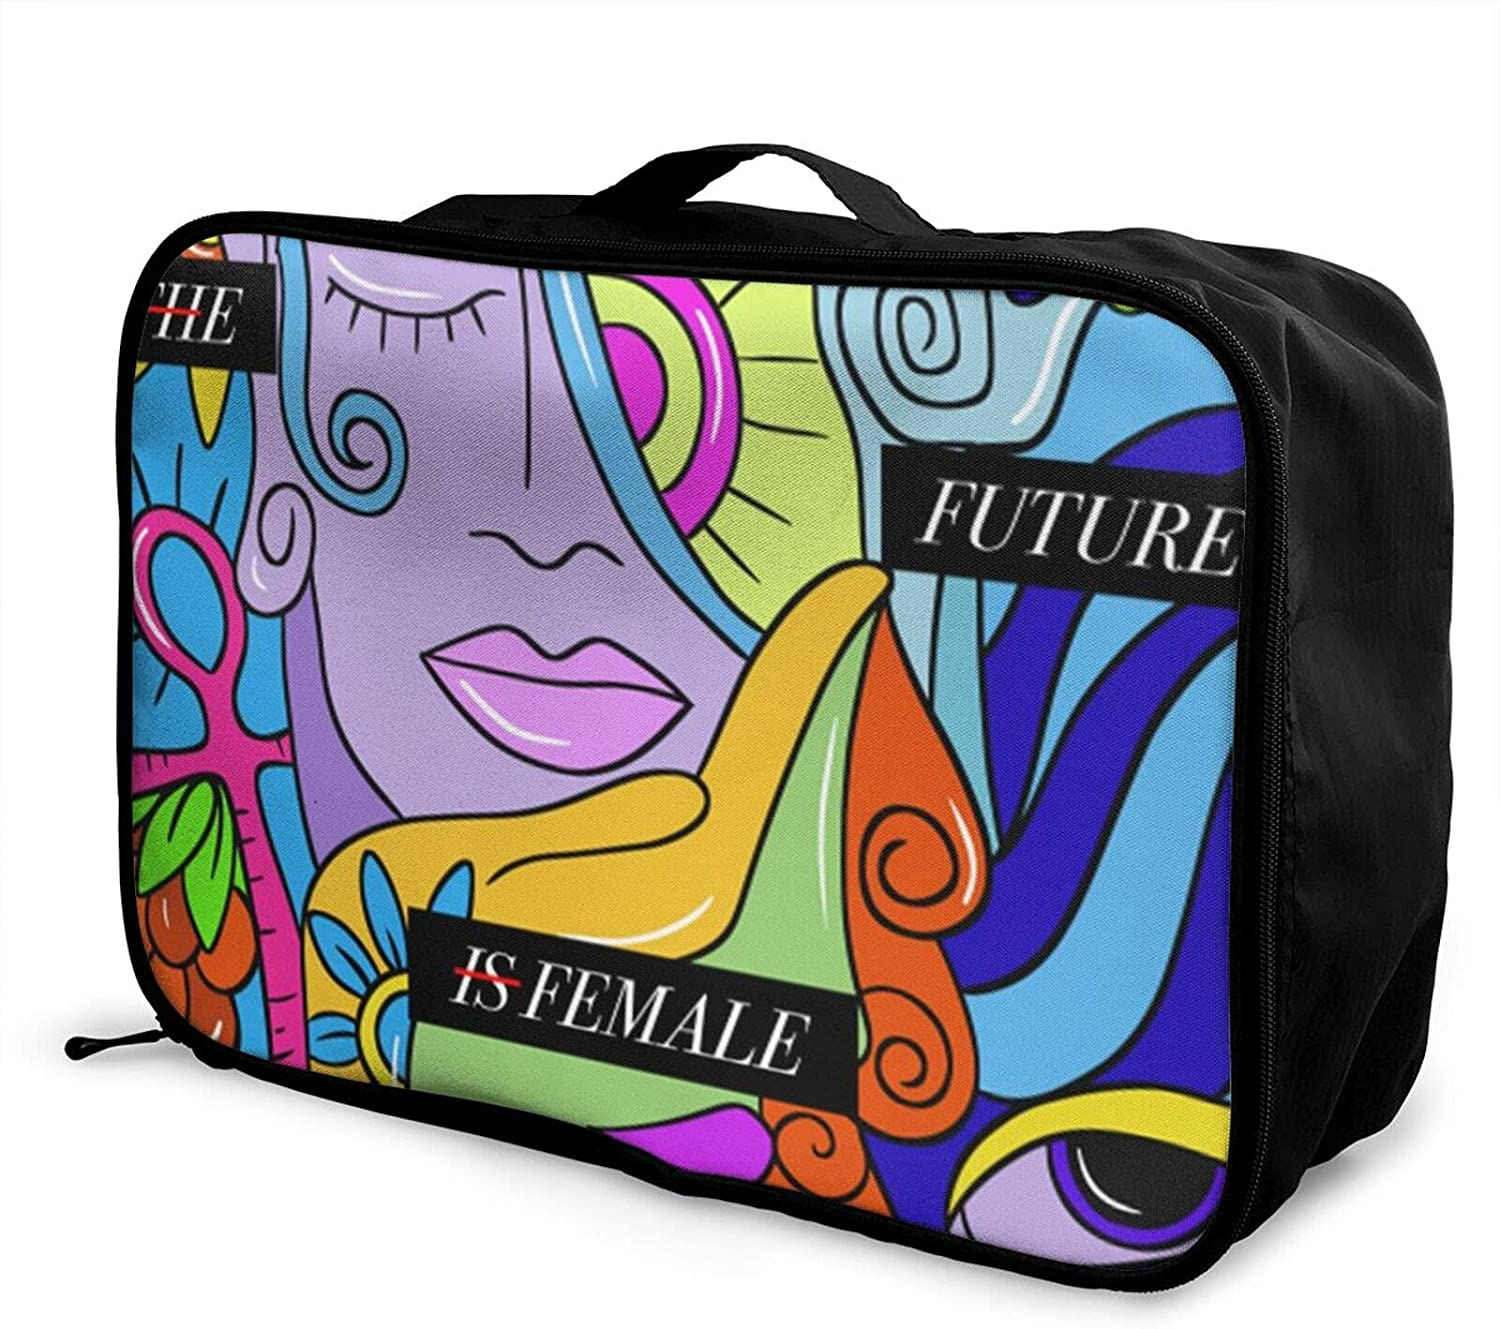 Foldable Travel Bag Tote Female Equal Future T Right Is Carry-On Our shop OFFers the best service half